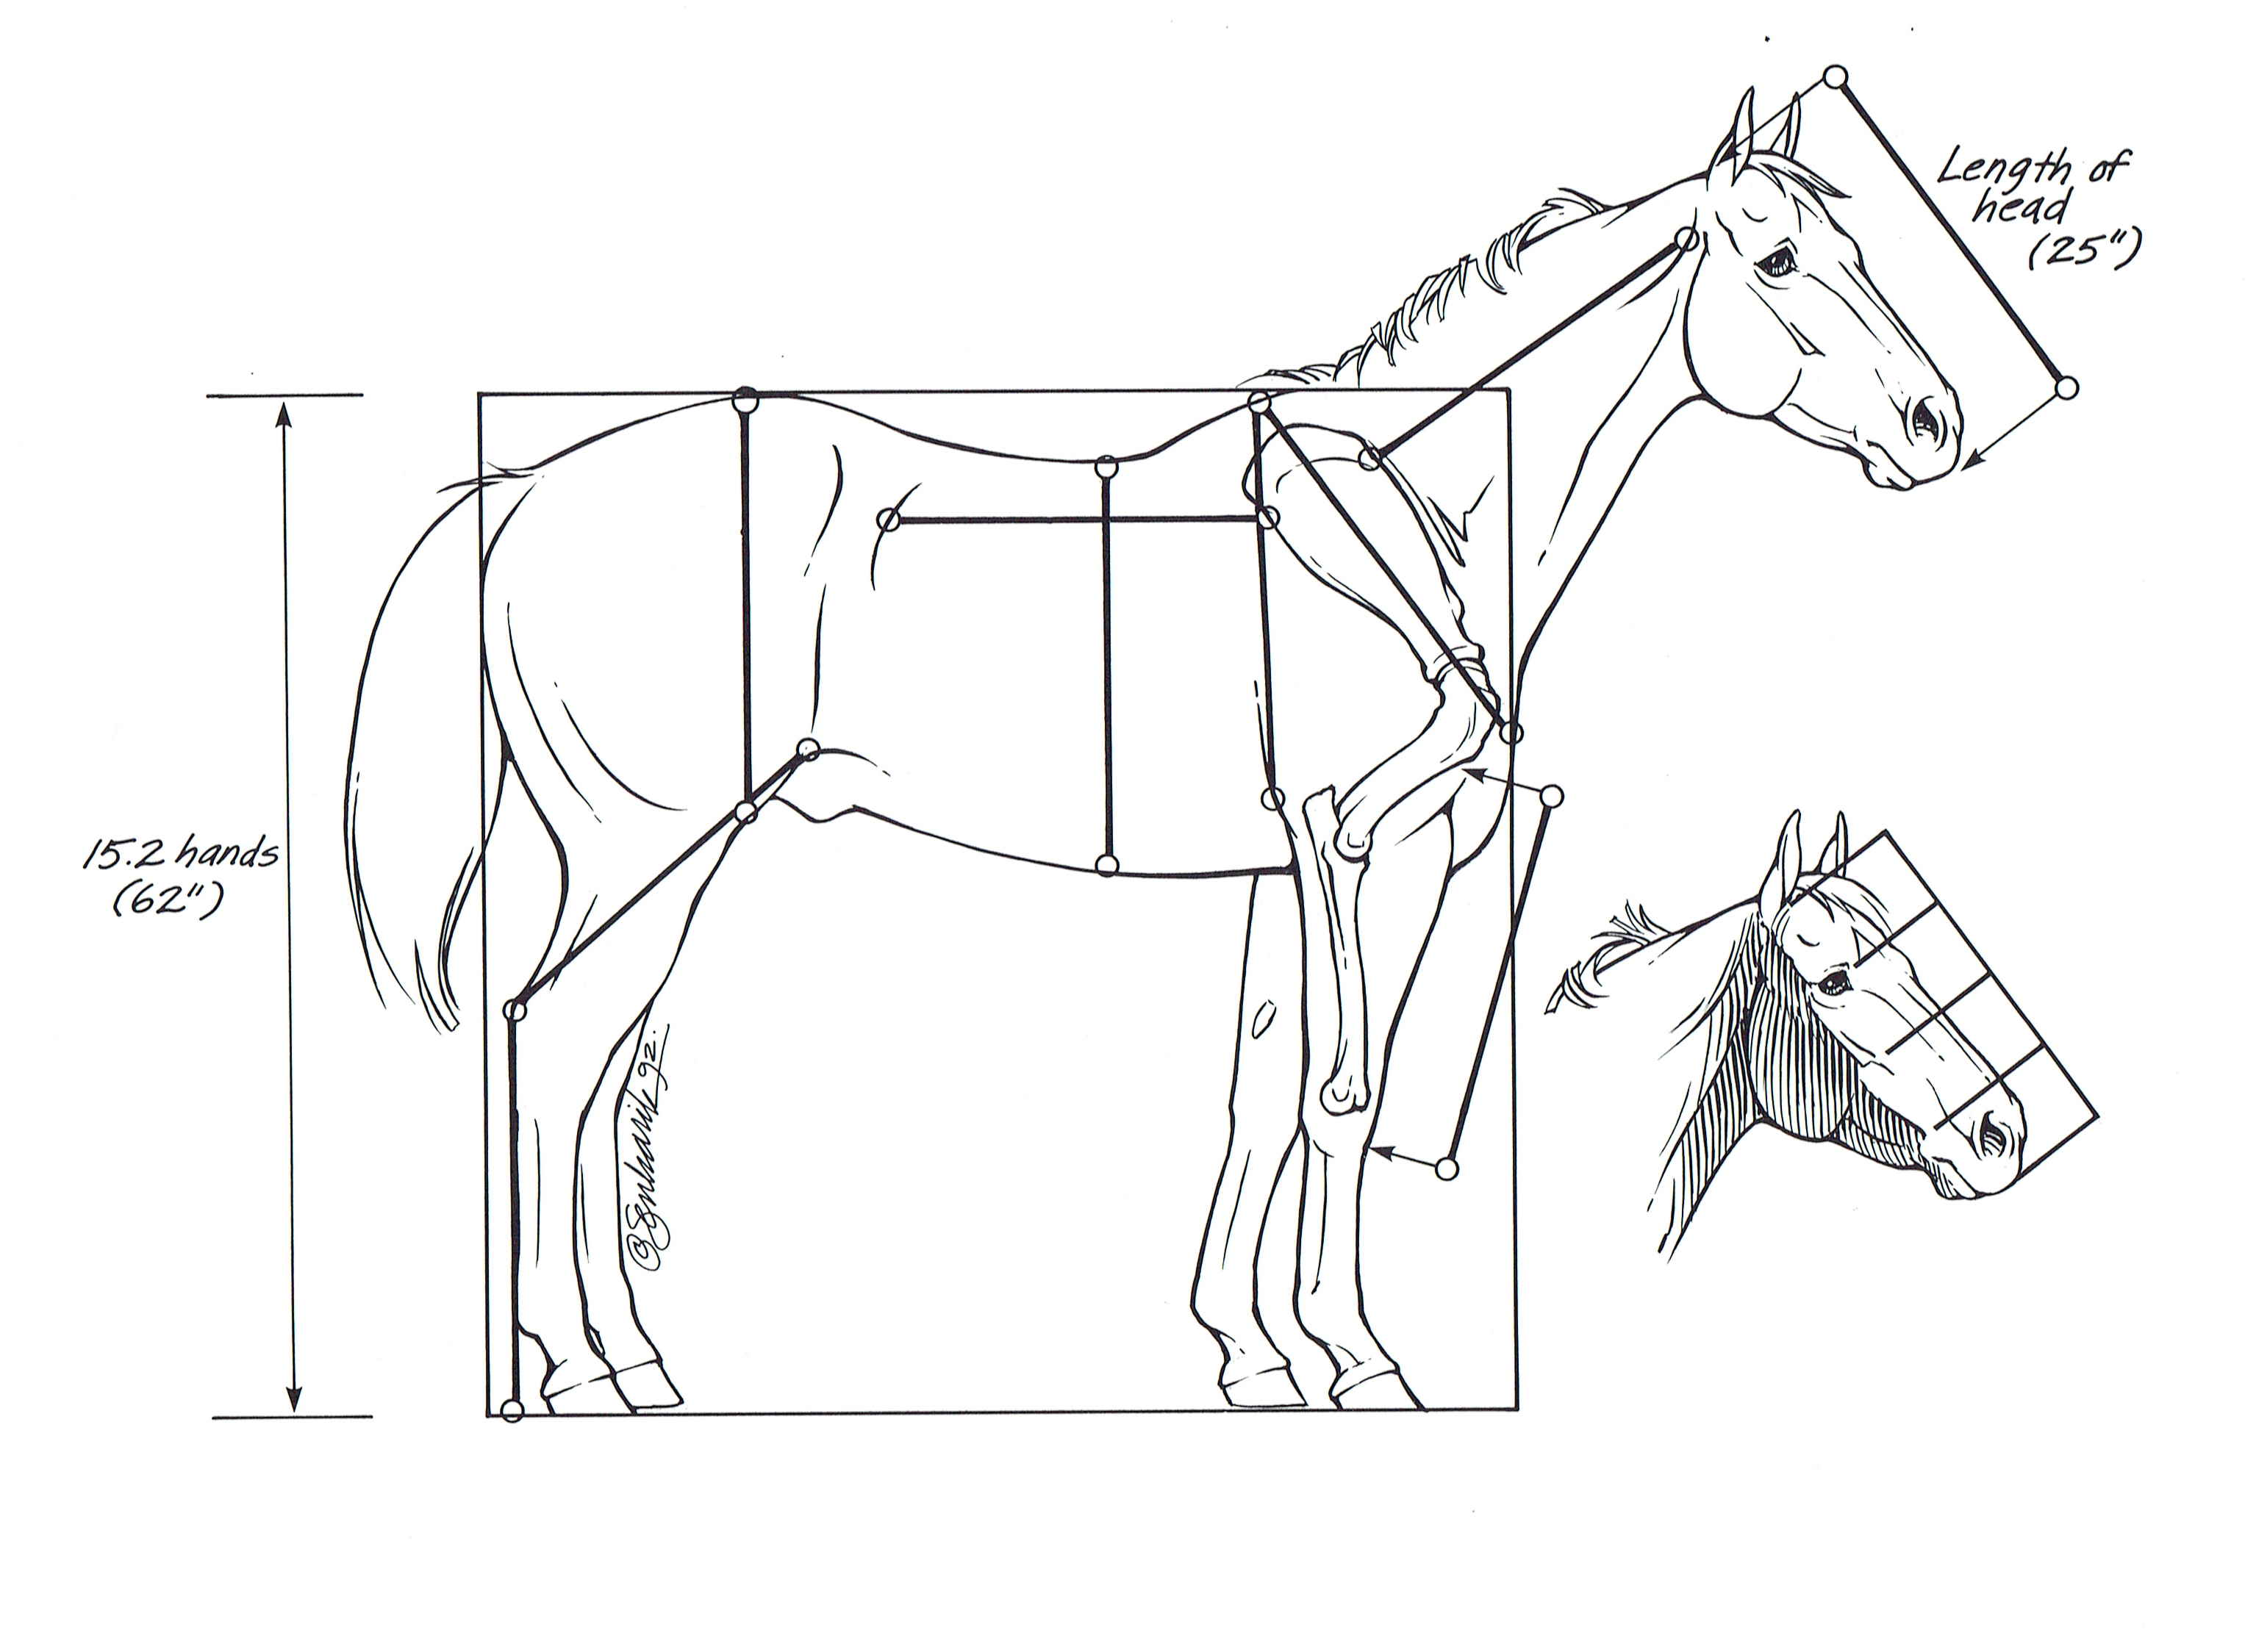 Worksheets Horse Anatomy Worksheet horses anatomy diagram gallery human learning horse worksheet spine